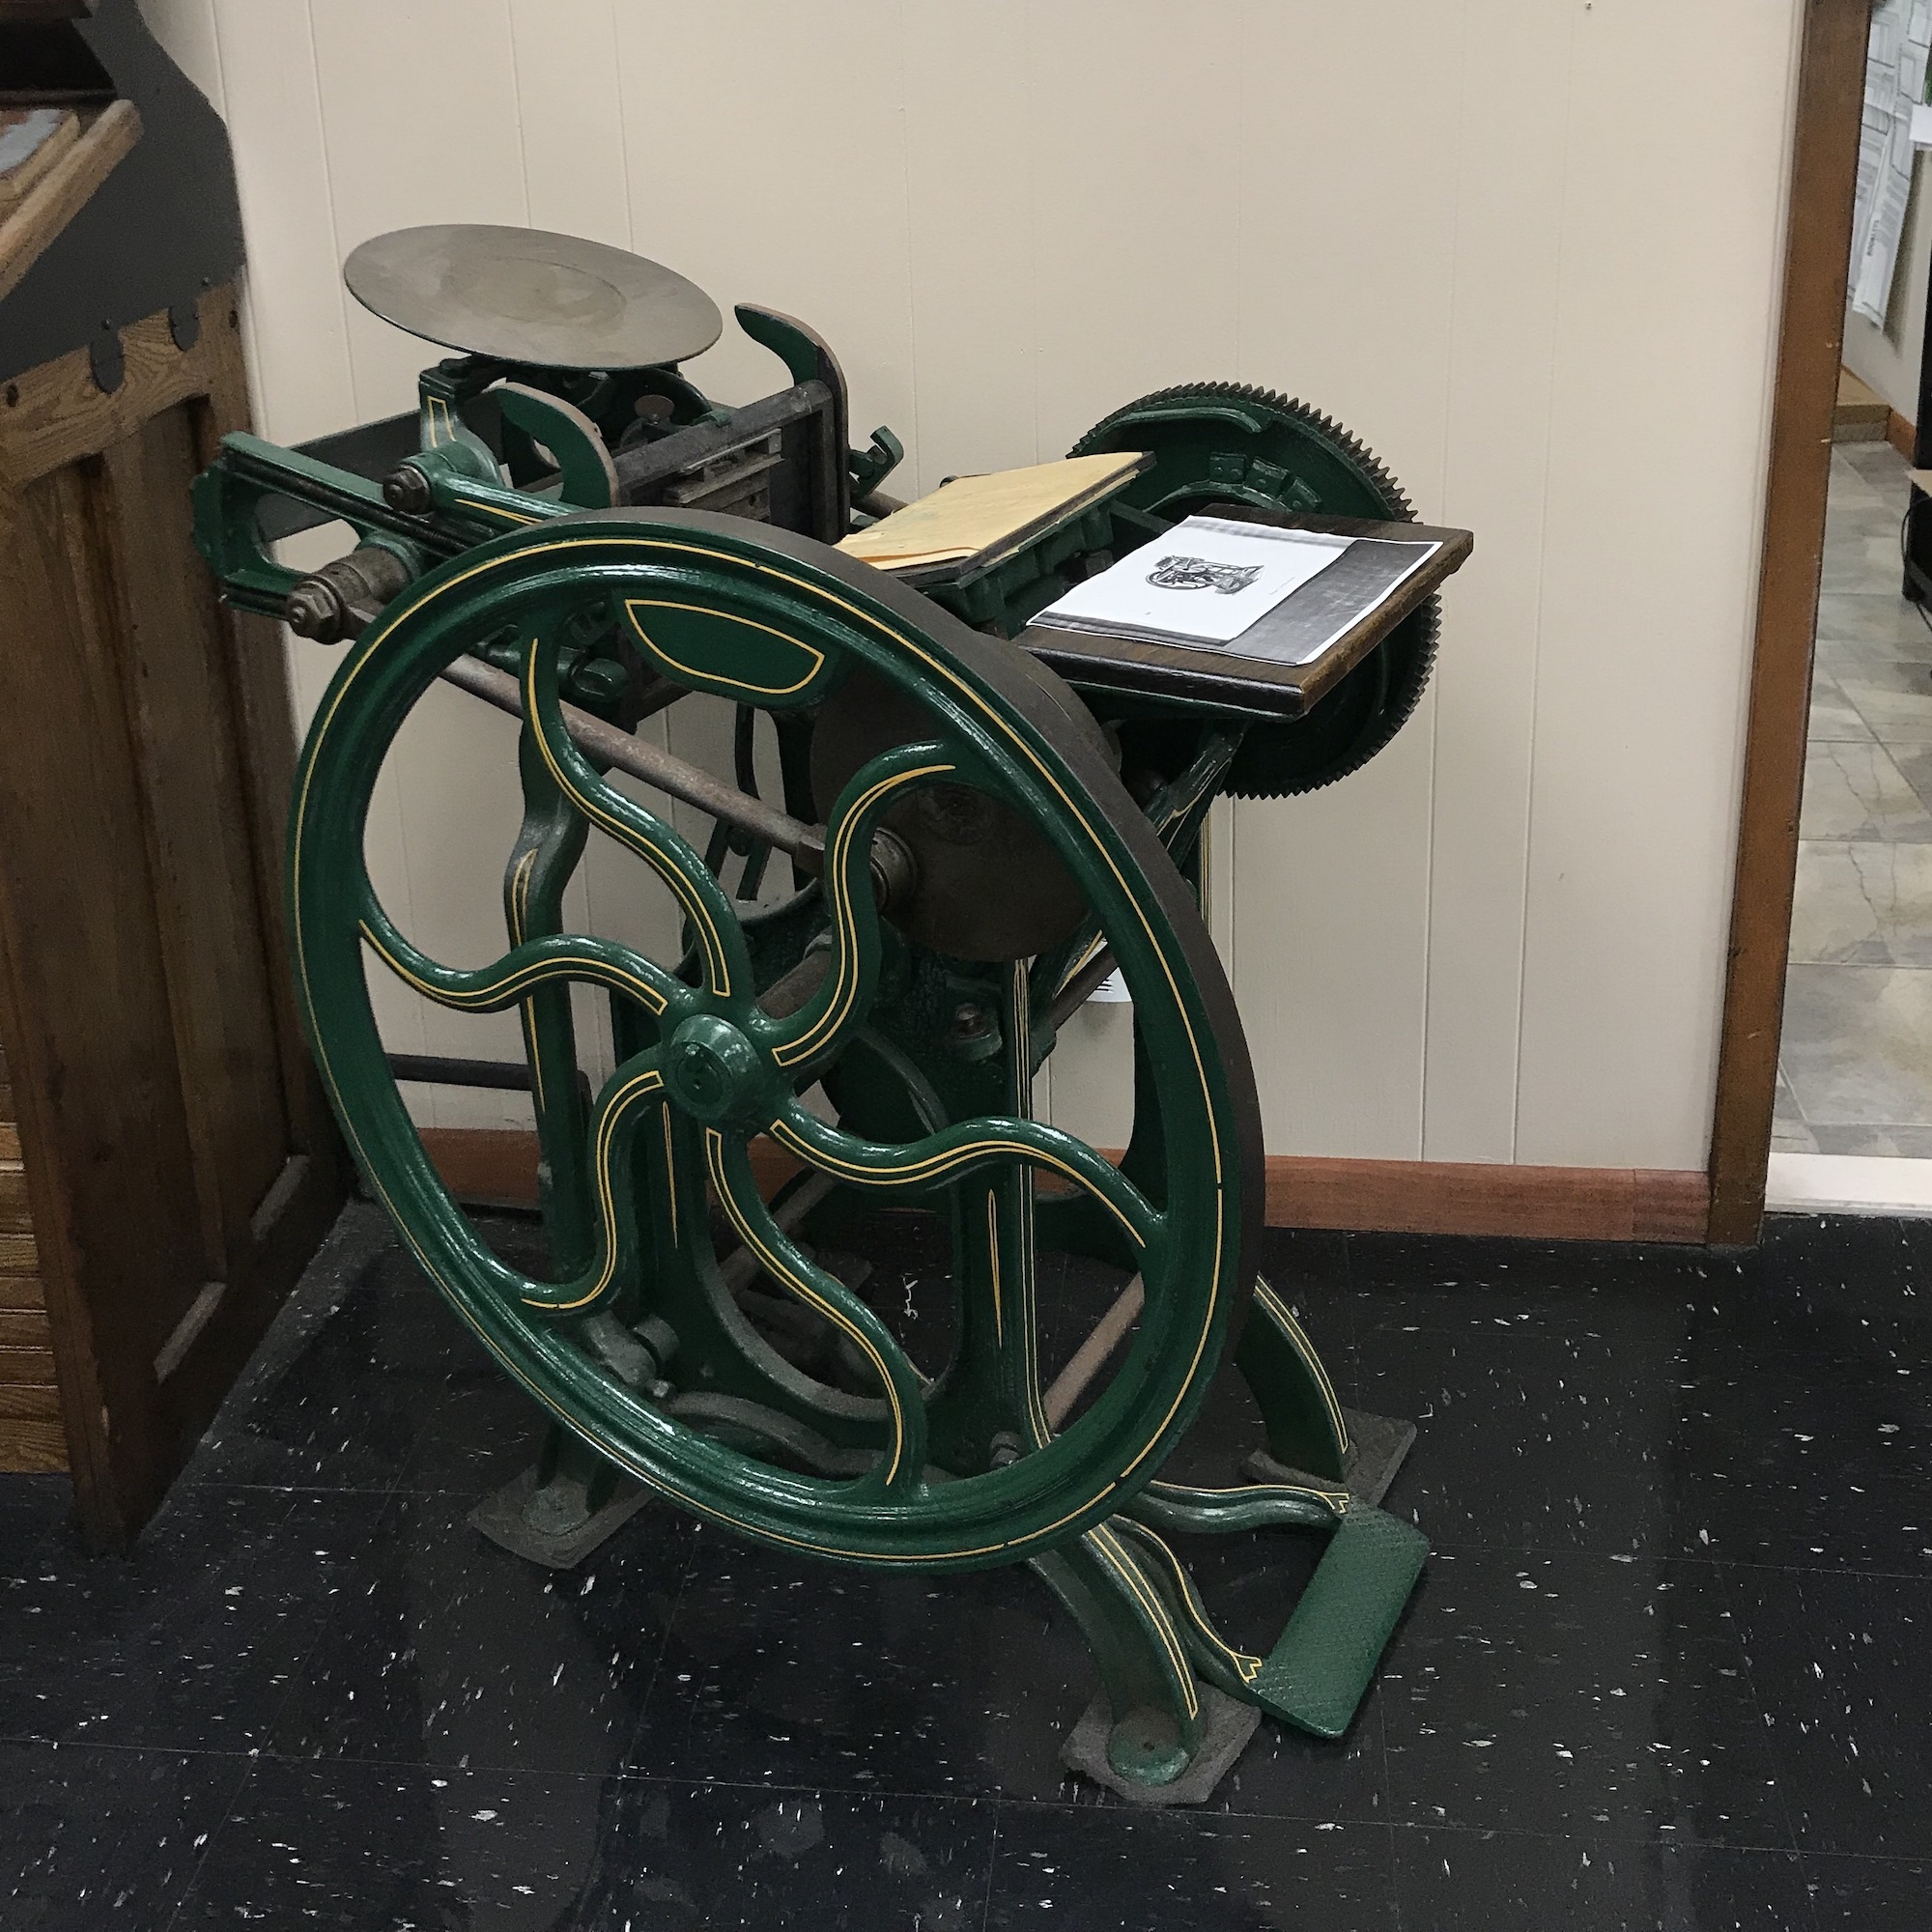 vintage book cutter from 1800s